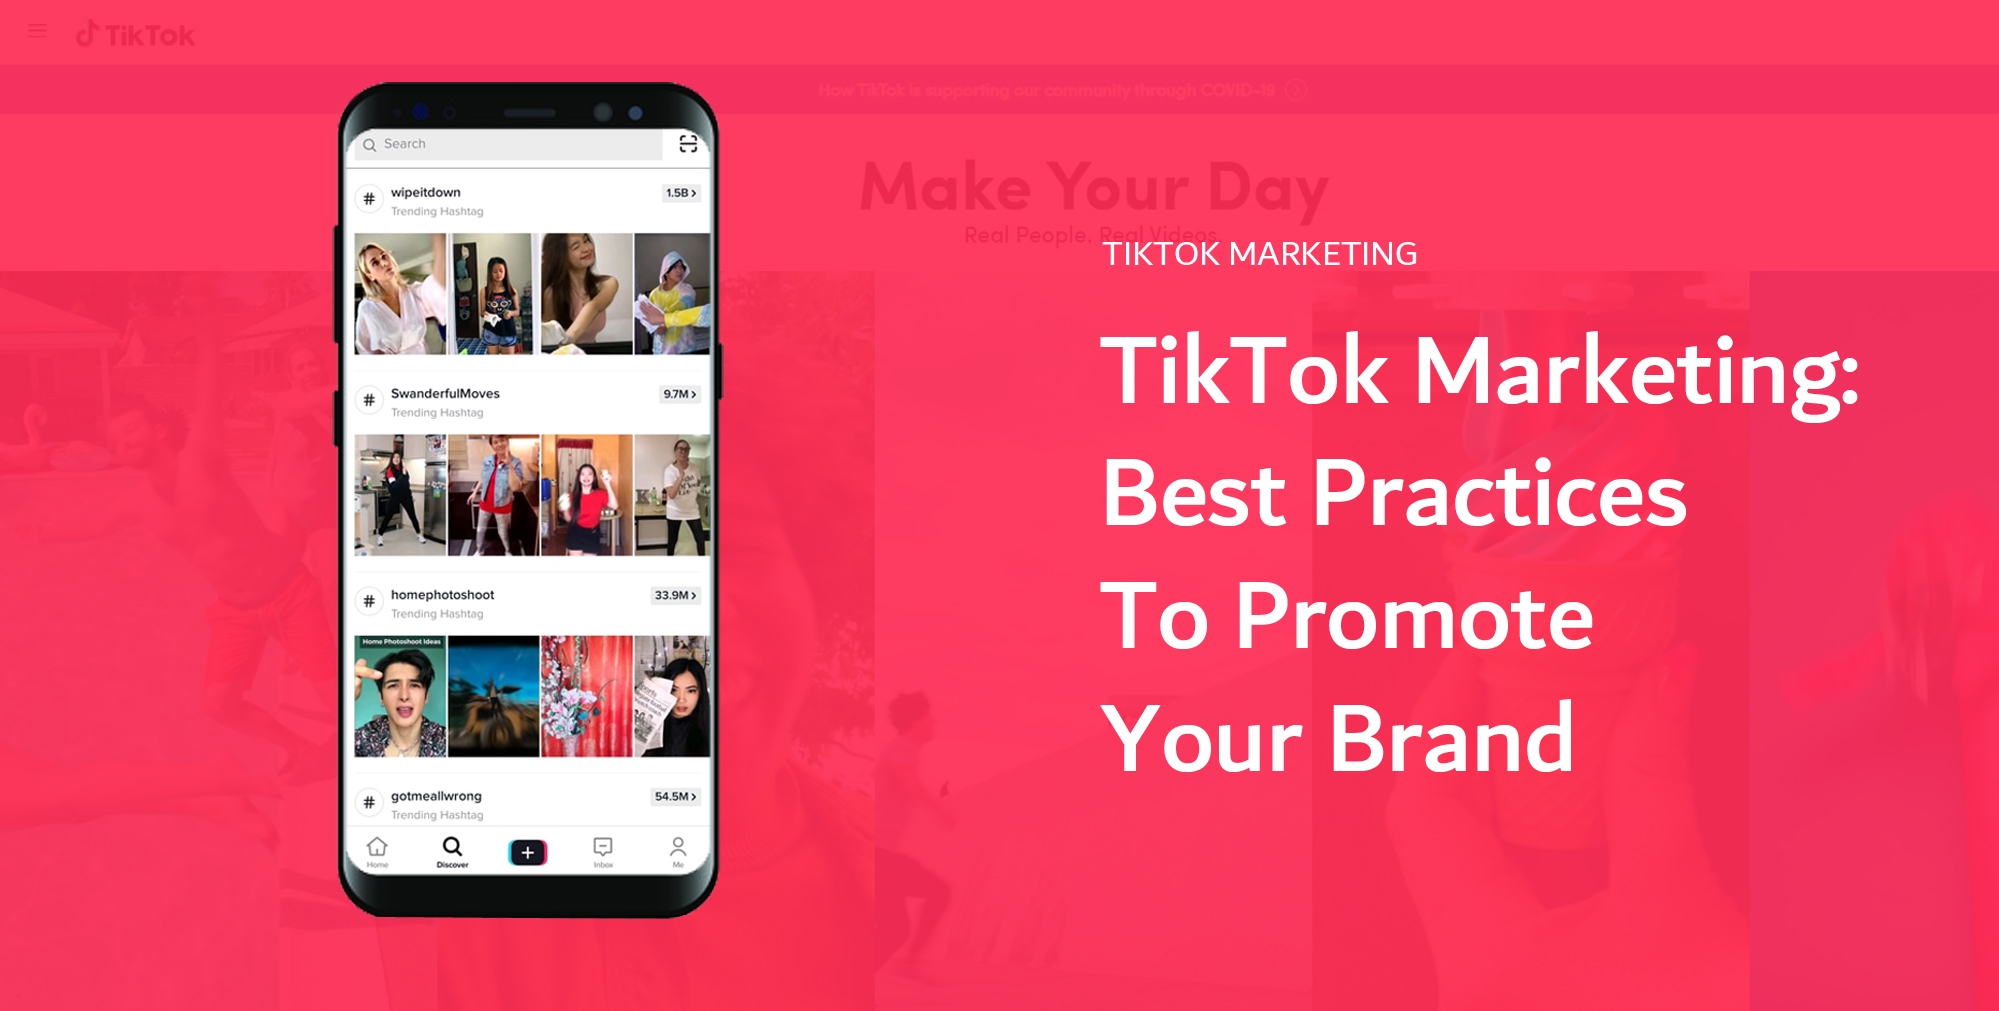 TikTok Marketing Best Practices